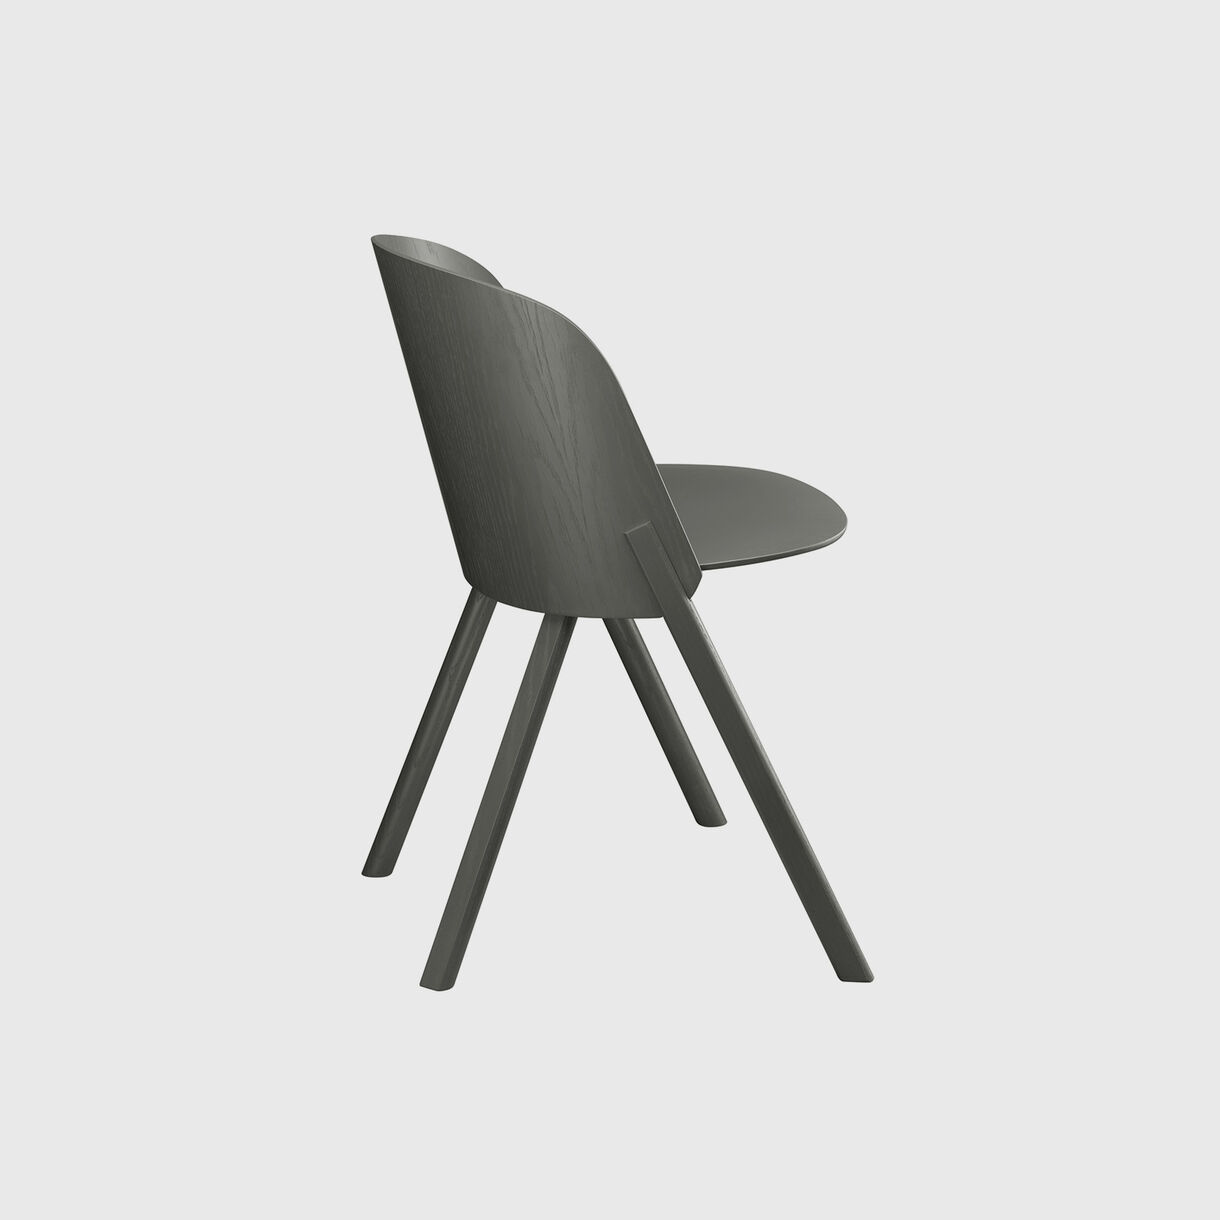 This Chair, Umbra Grey